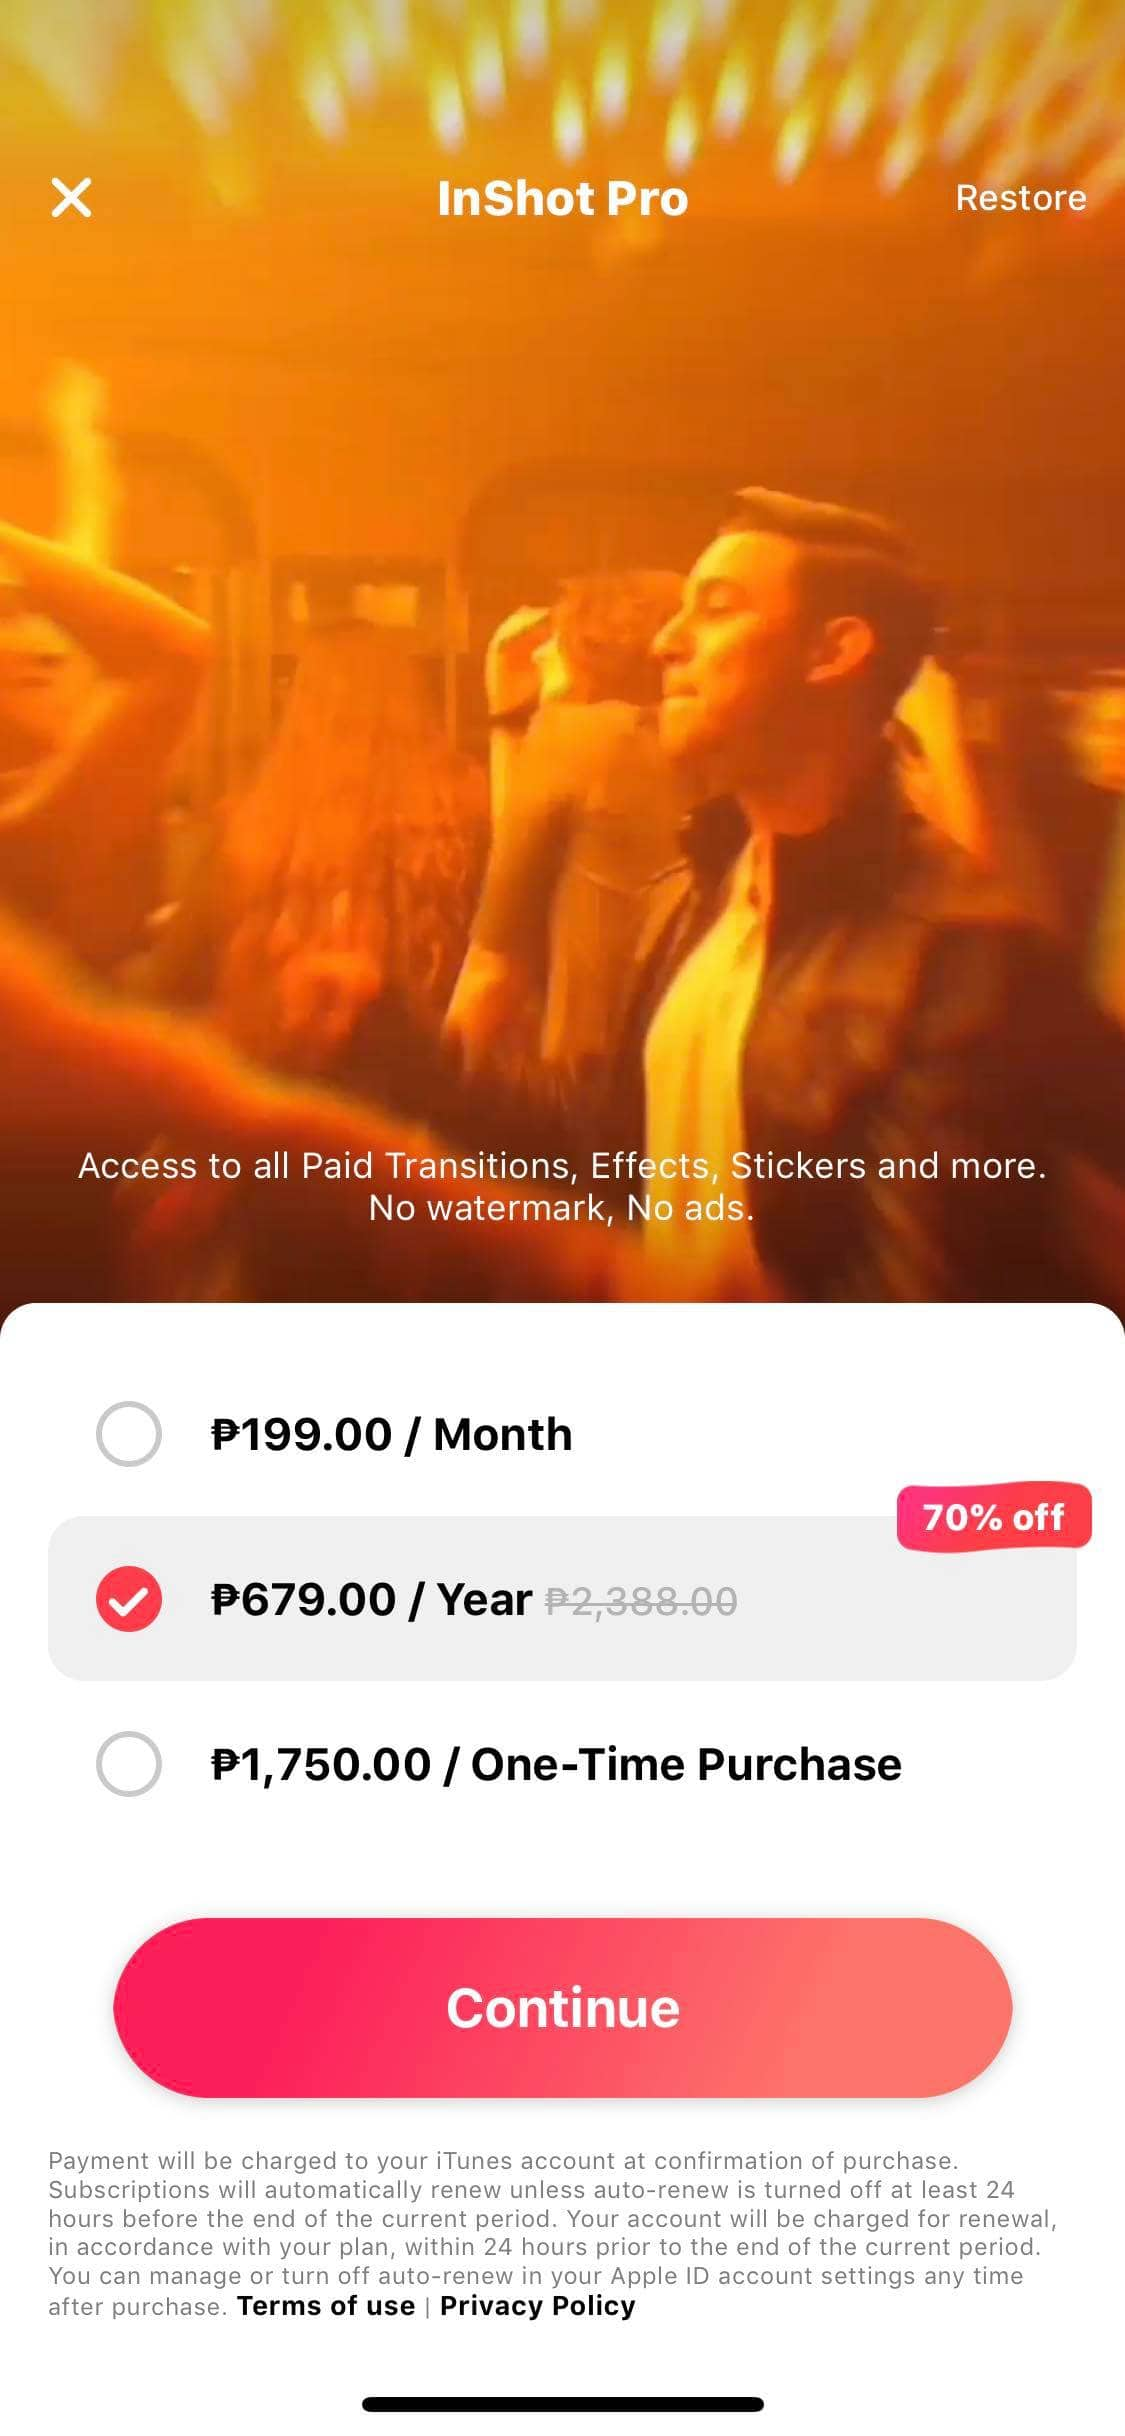 Pricing on iOS by InShot